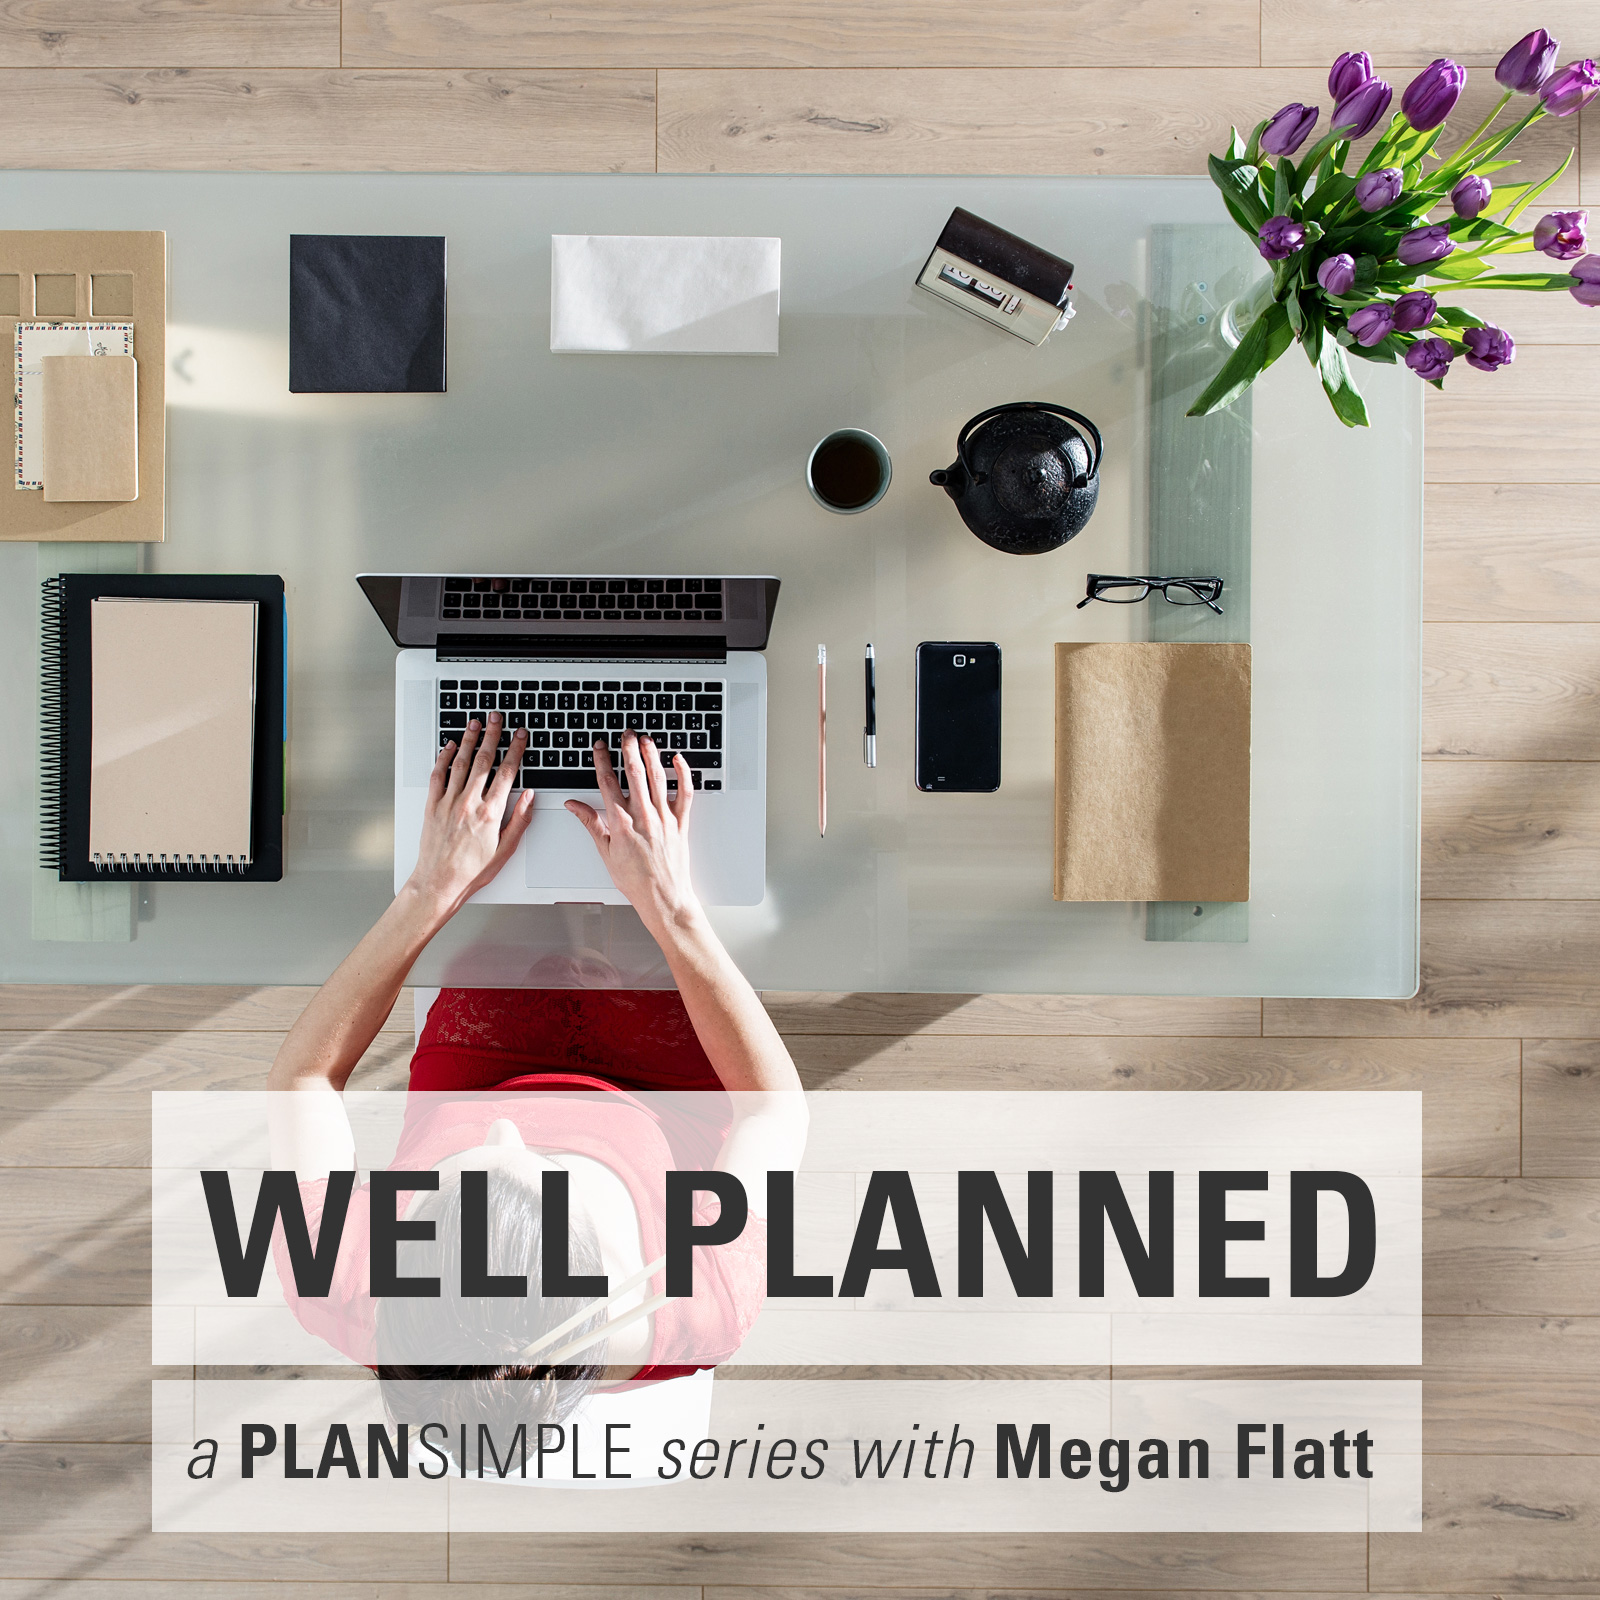 Systems & Support On Well Planned Series With Megan Flatt